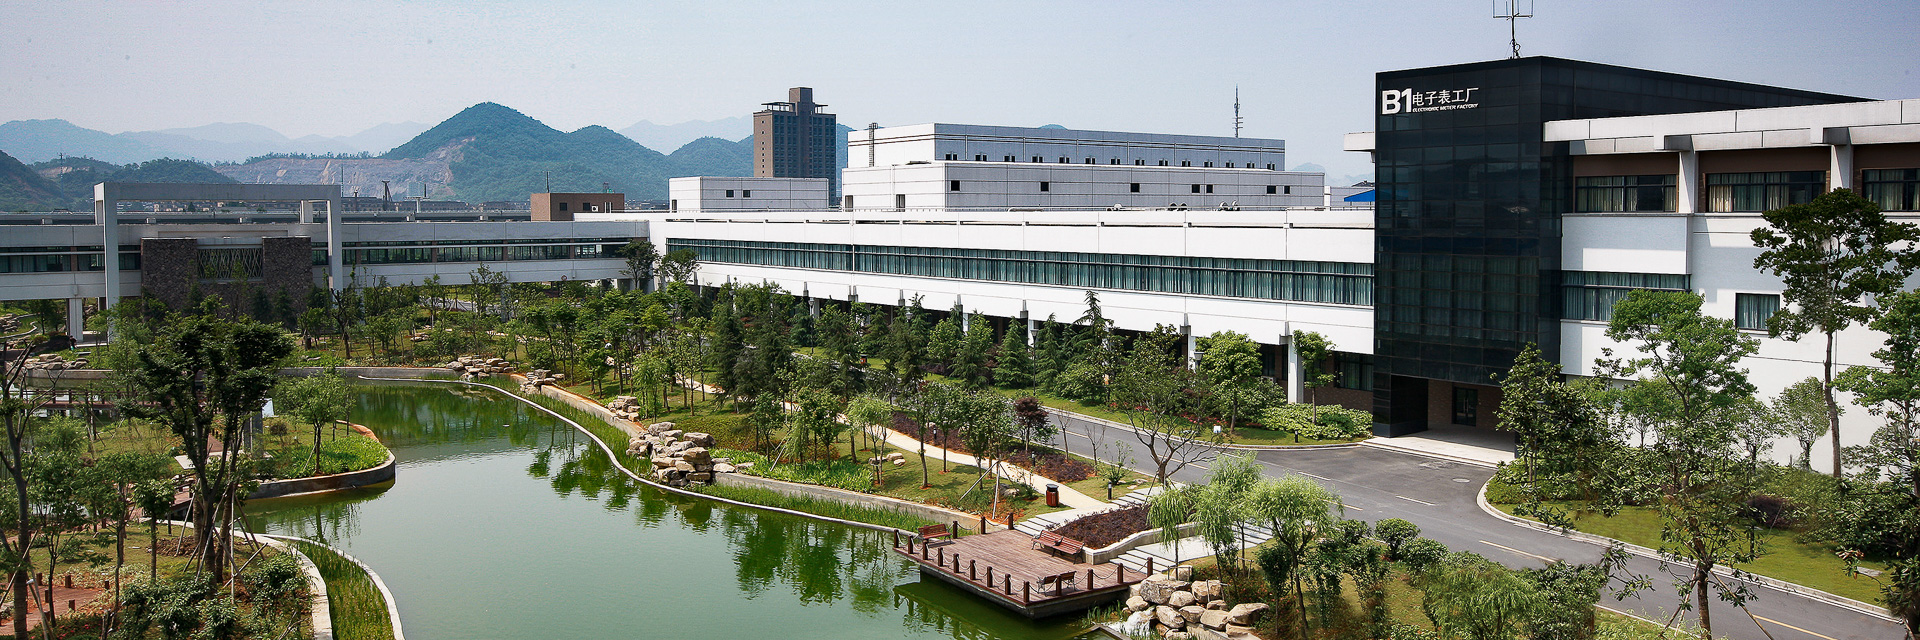 Holley Smart Meter Factory - Hangzhou, China